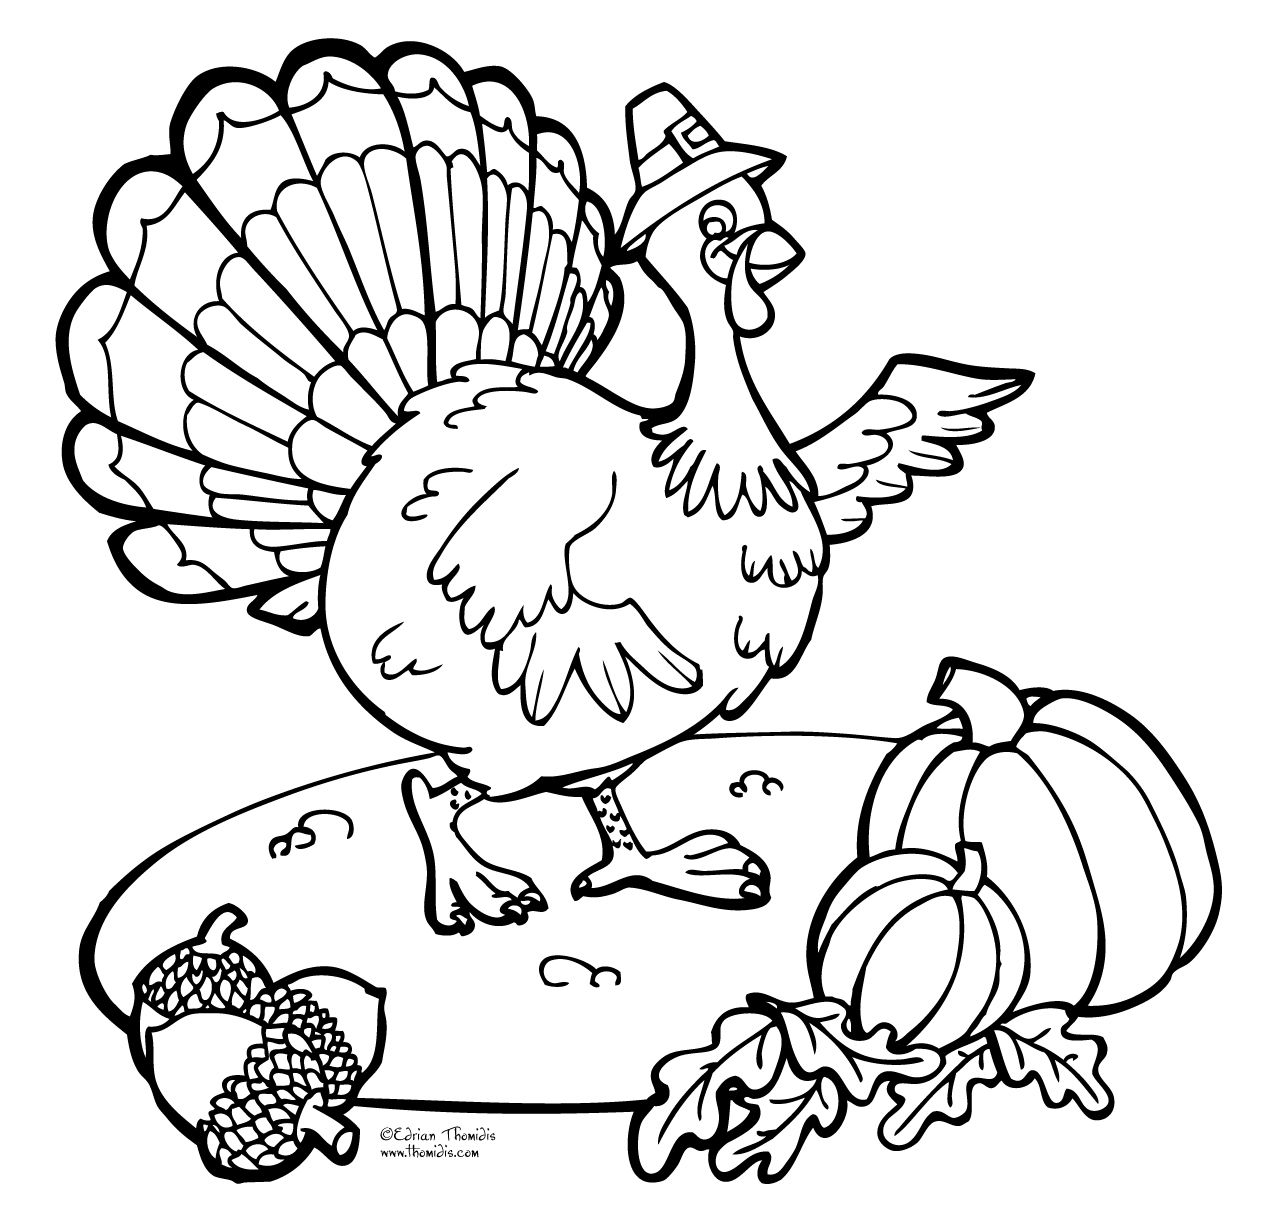 Clip Art Turkey Thanksgiving Coloring Pages 1000 images about clipart thanksgiving n turkeys on pinterest coloring pages cooking and thanksgiving